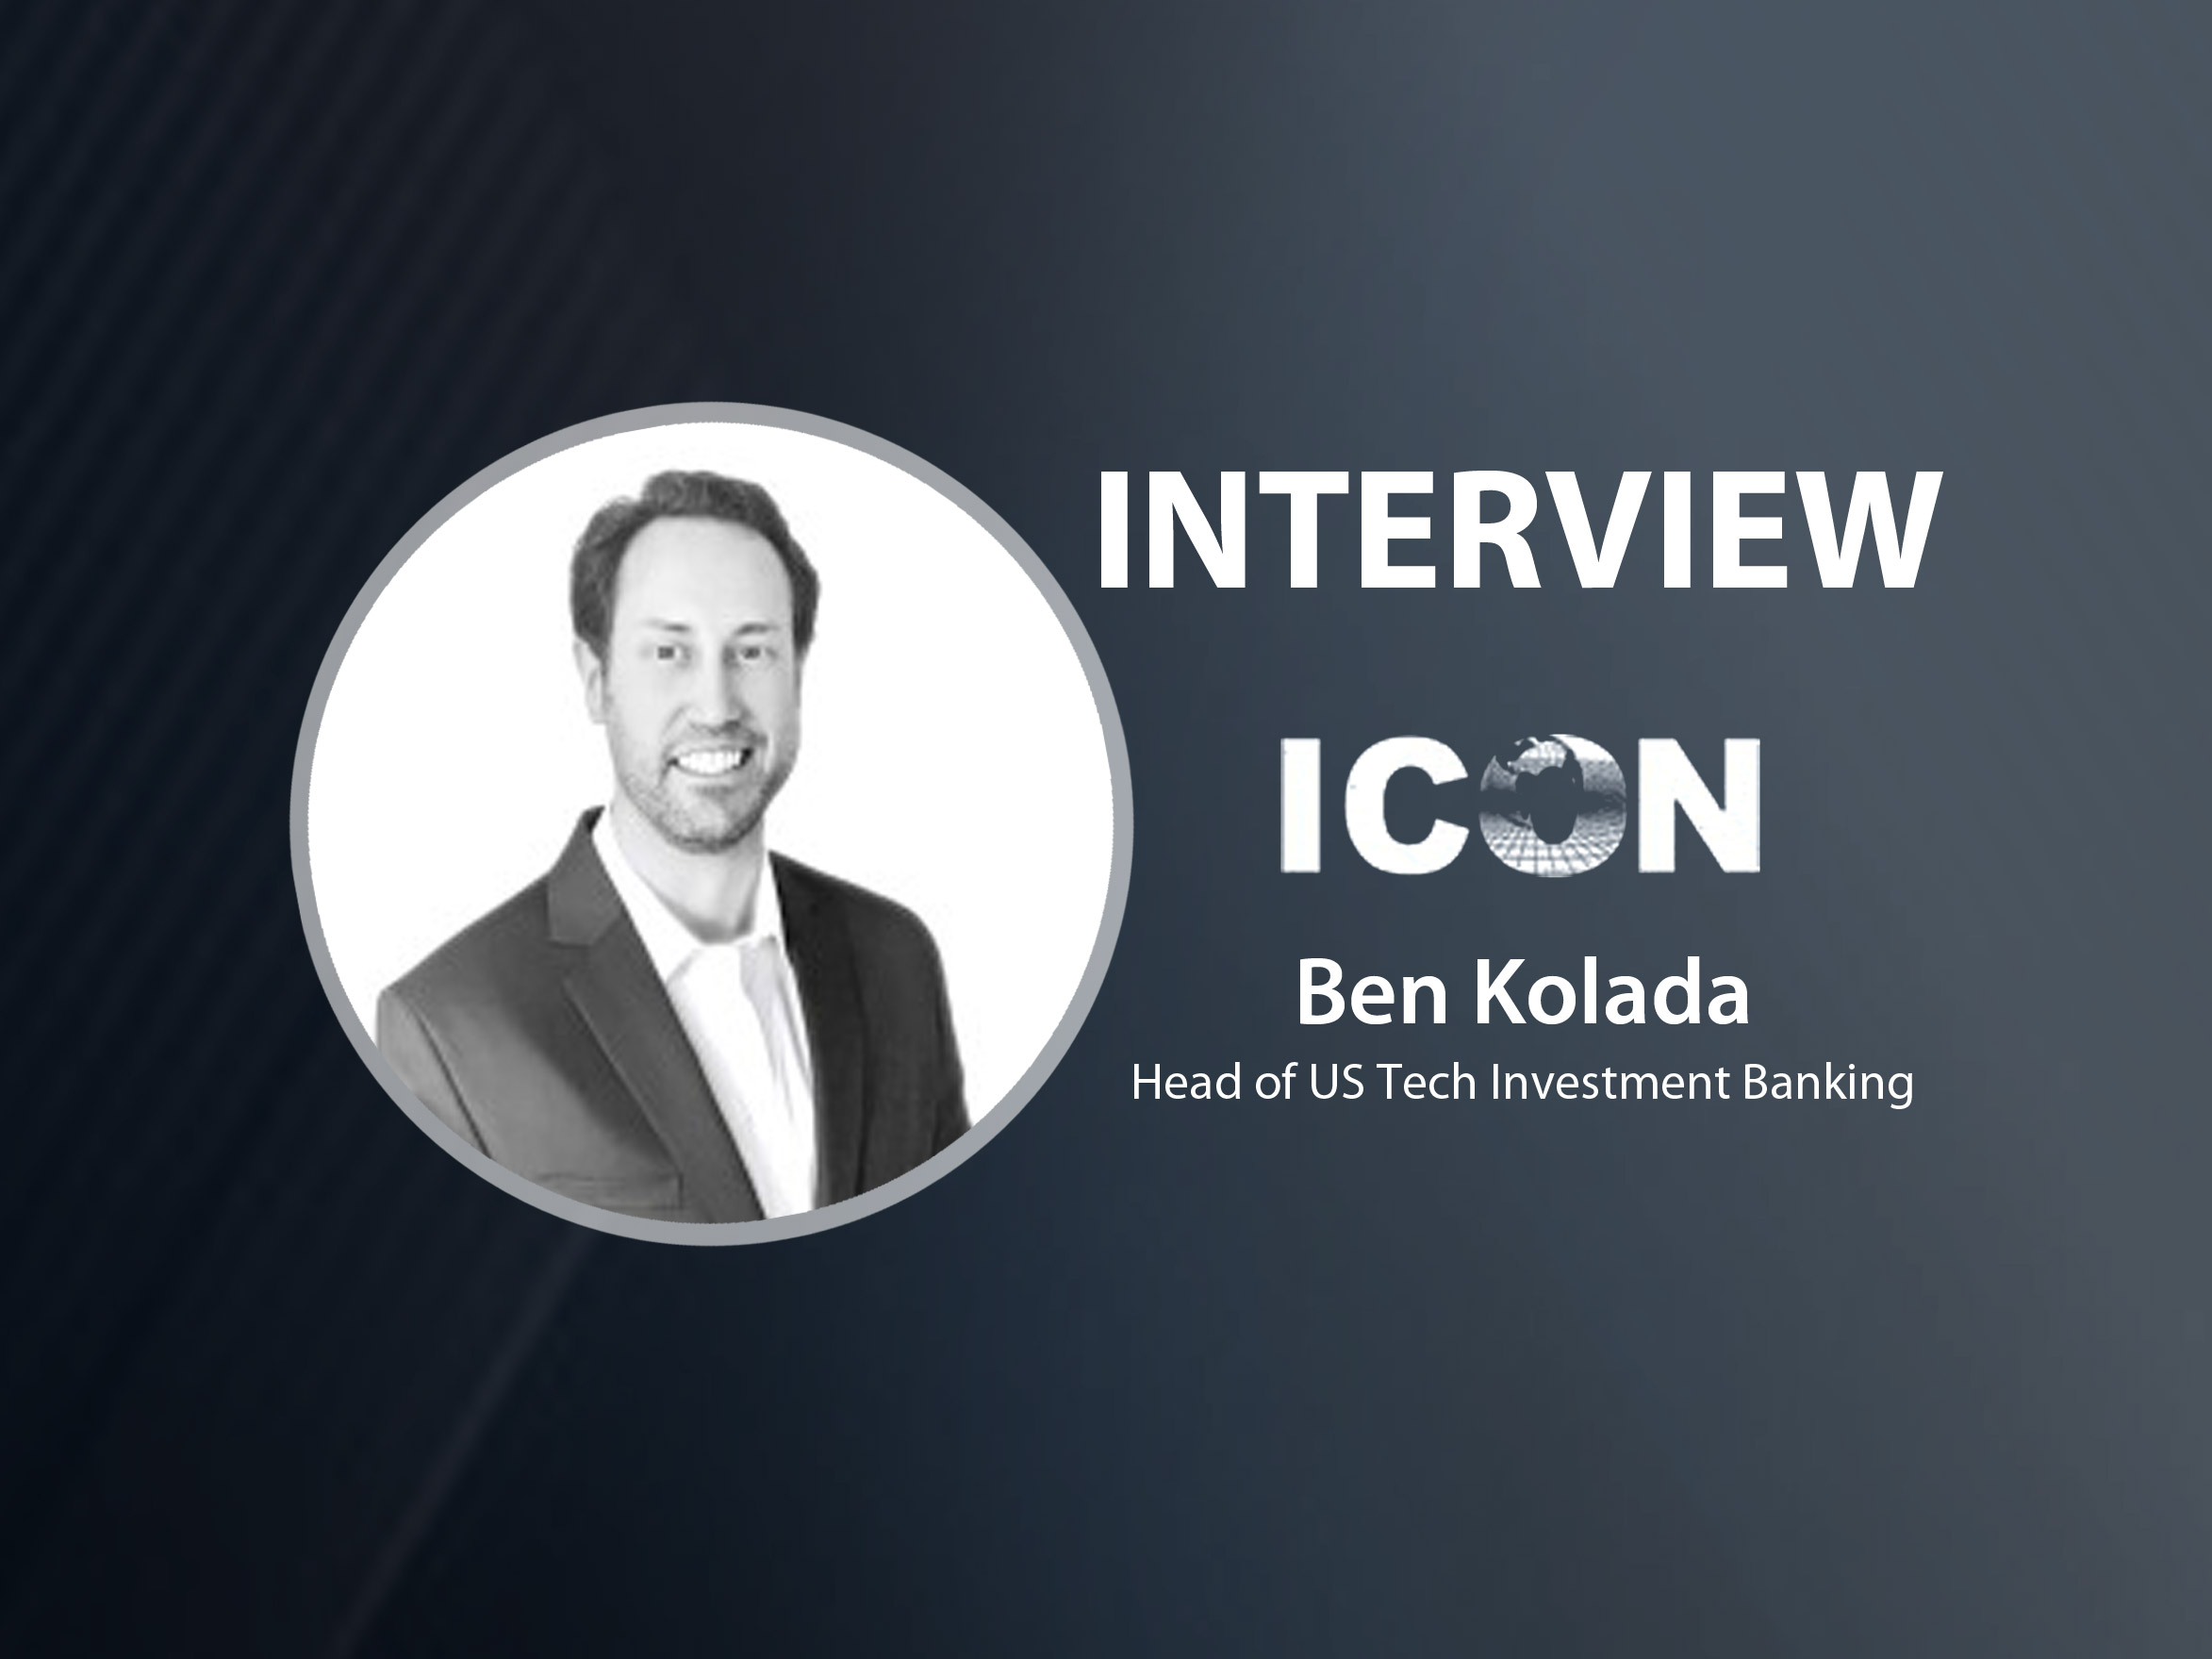 GlobalFintechSeries Interview with Ben Kolada, Head of US Tech Investment Banking, ICON